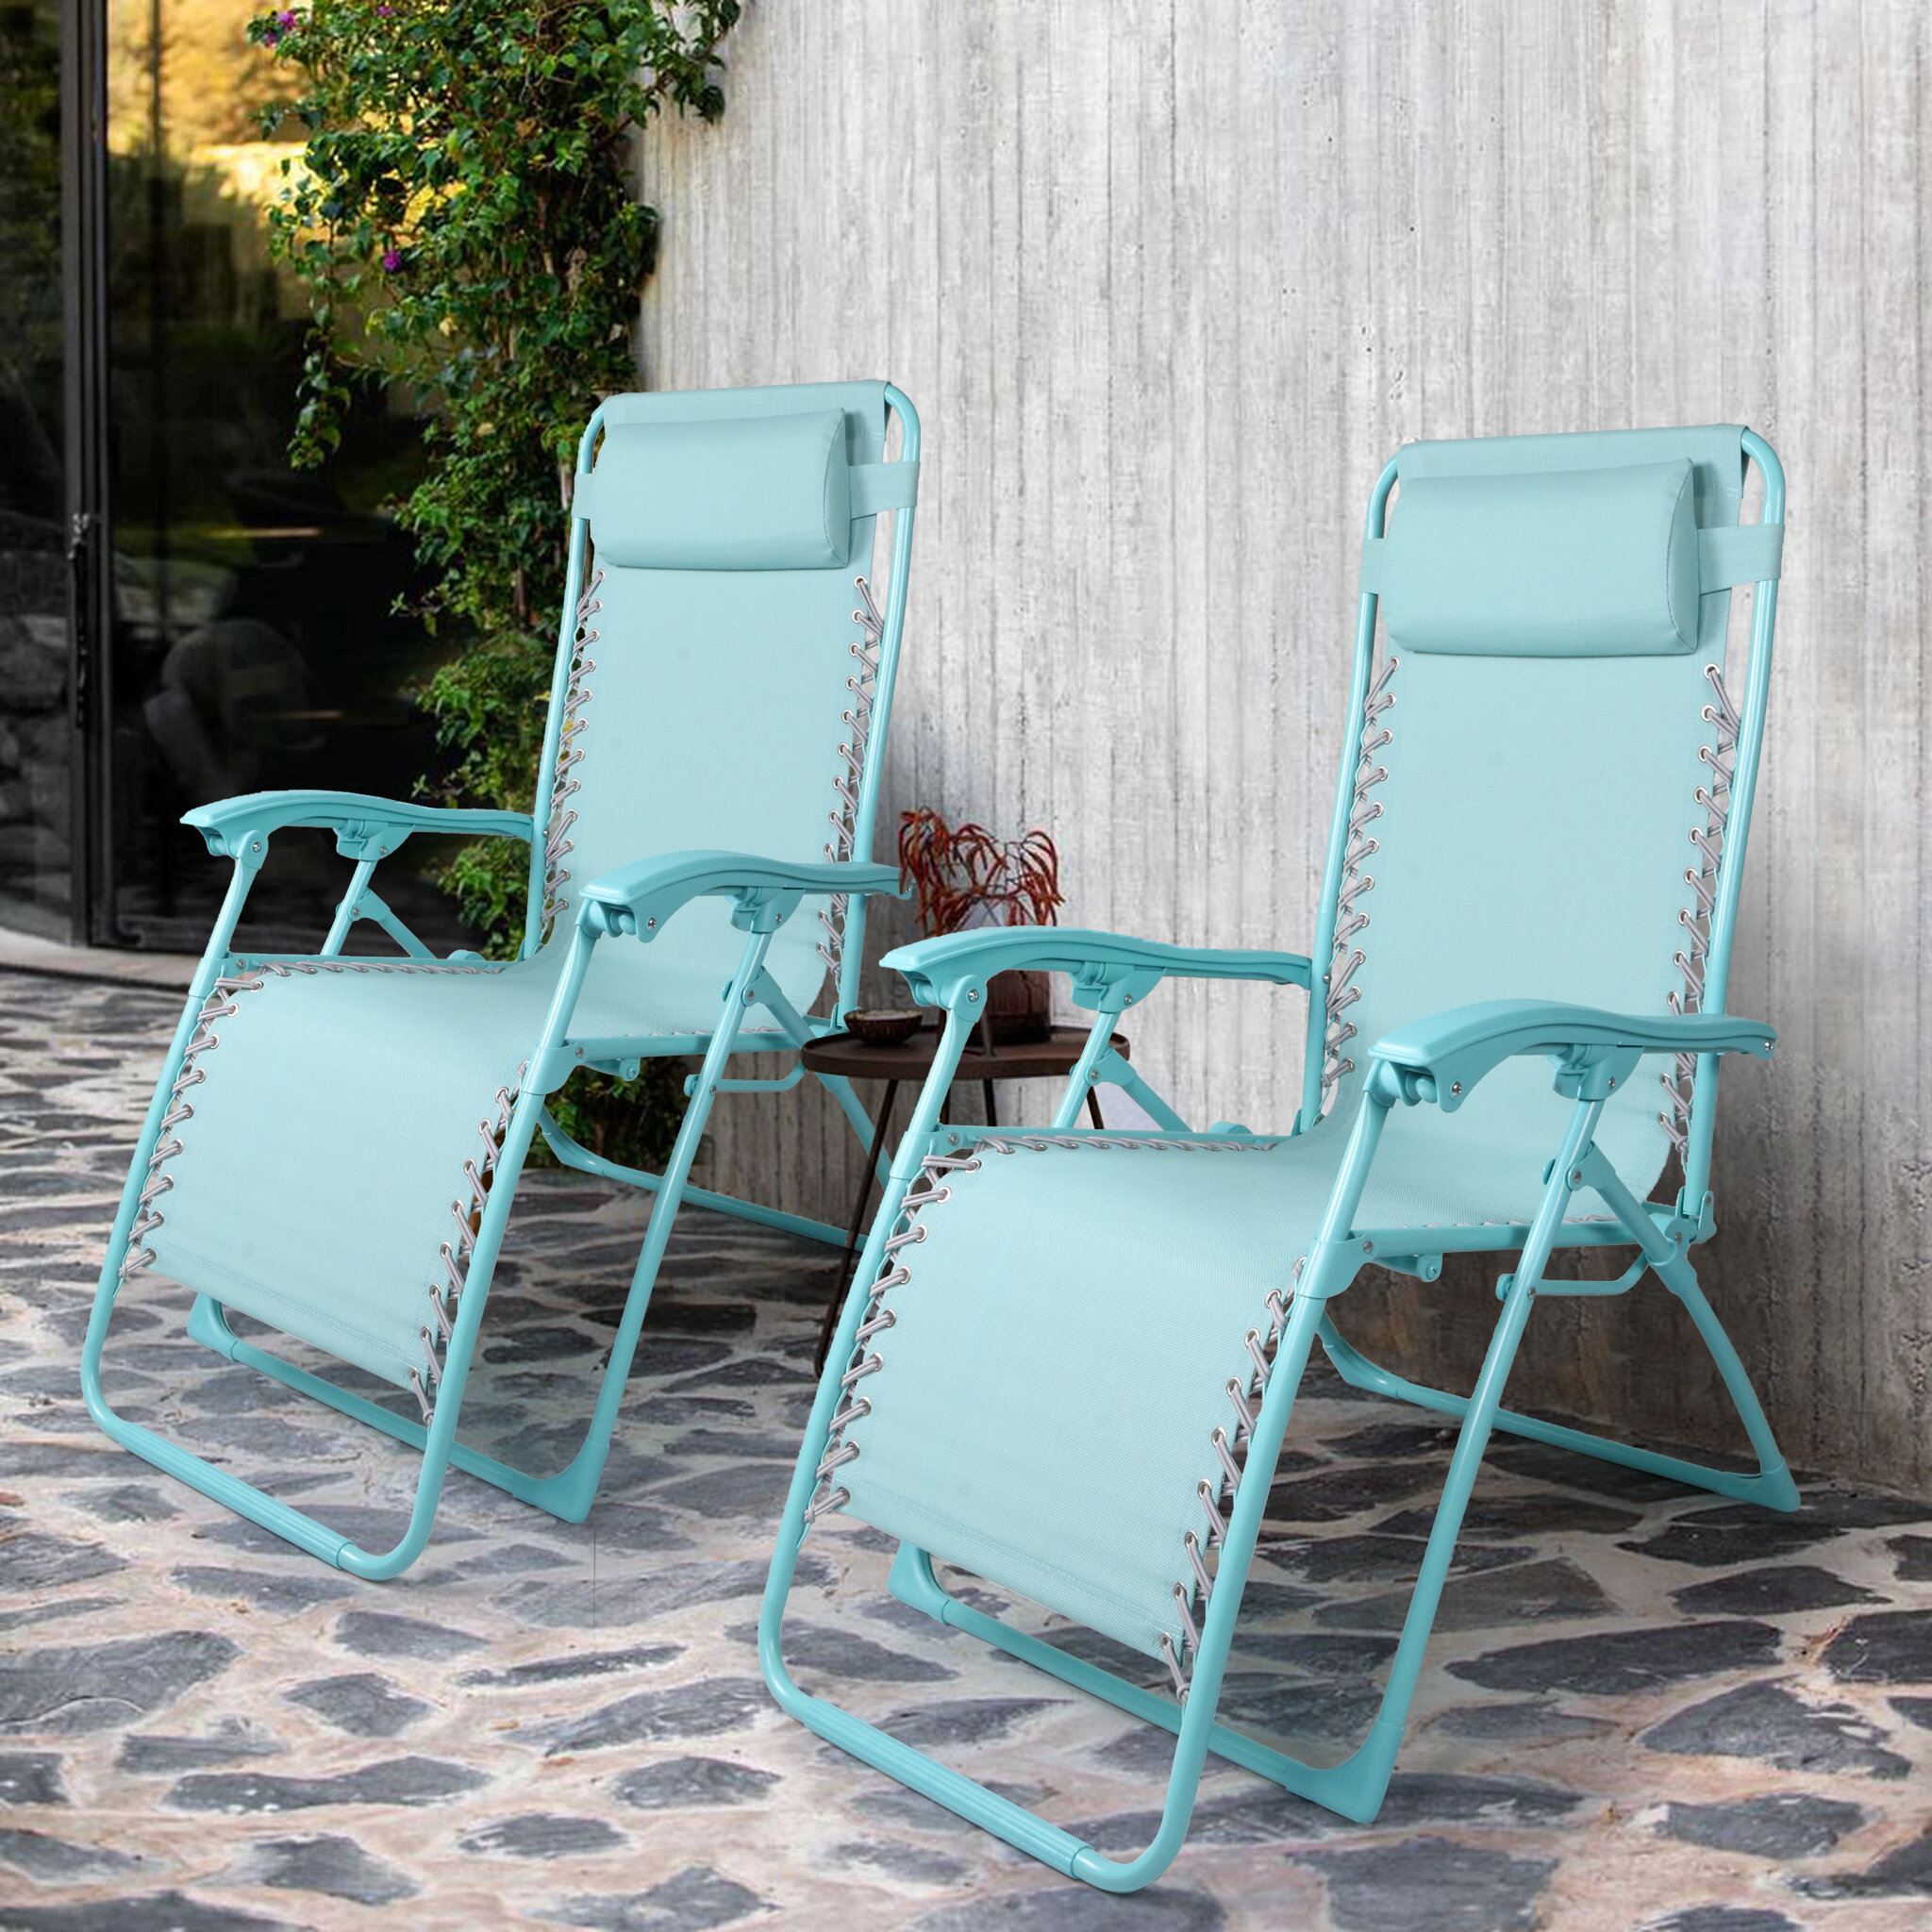 Set Of 11 Sun Chairs Portable Folding Breathable Garden Beach Zero Gravity  Chairs Lounger Chair Steel Pipe With Headrest For Adult-Blue